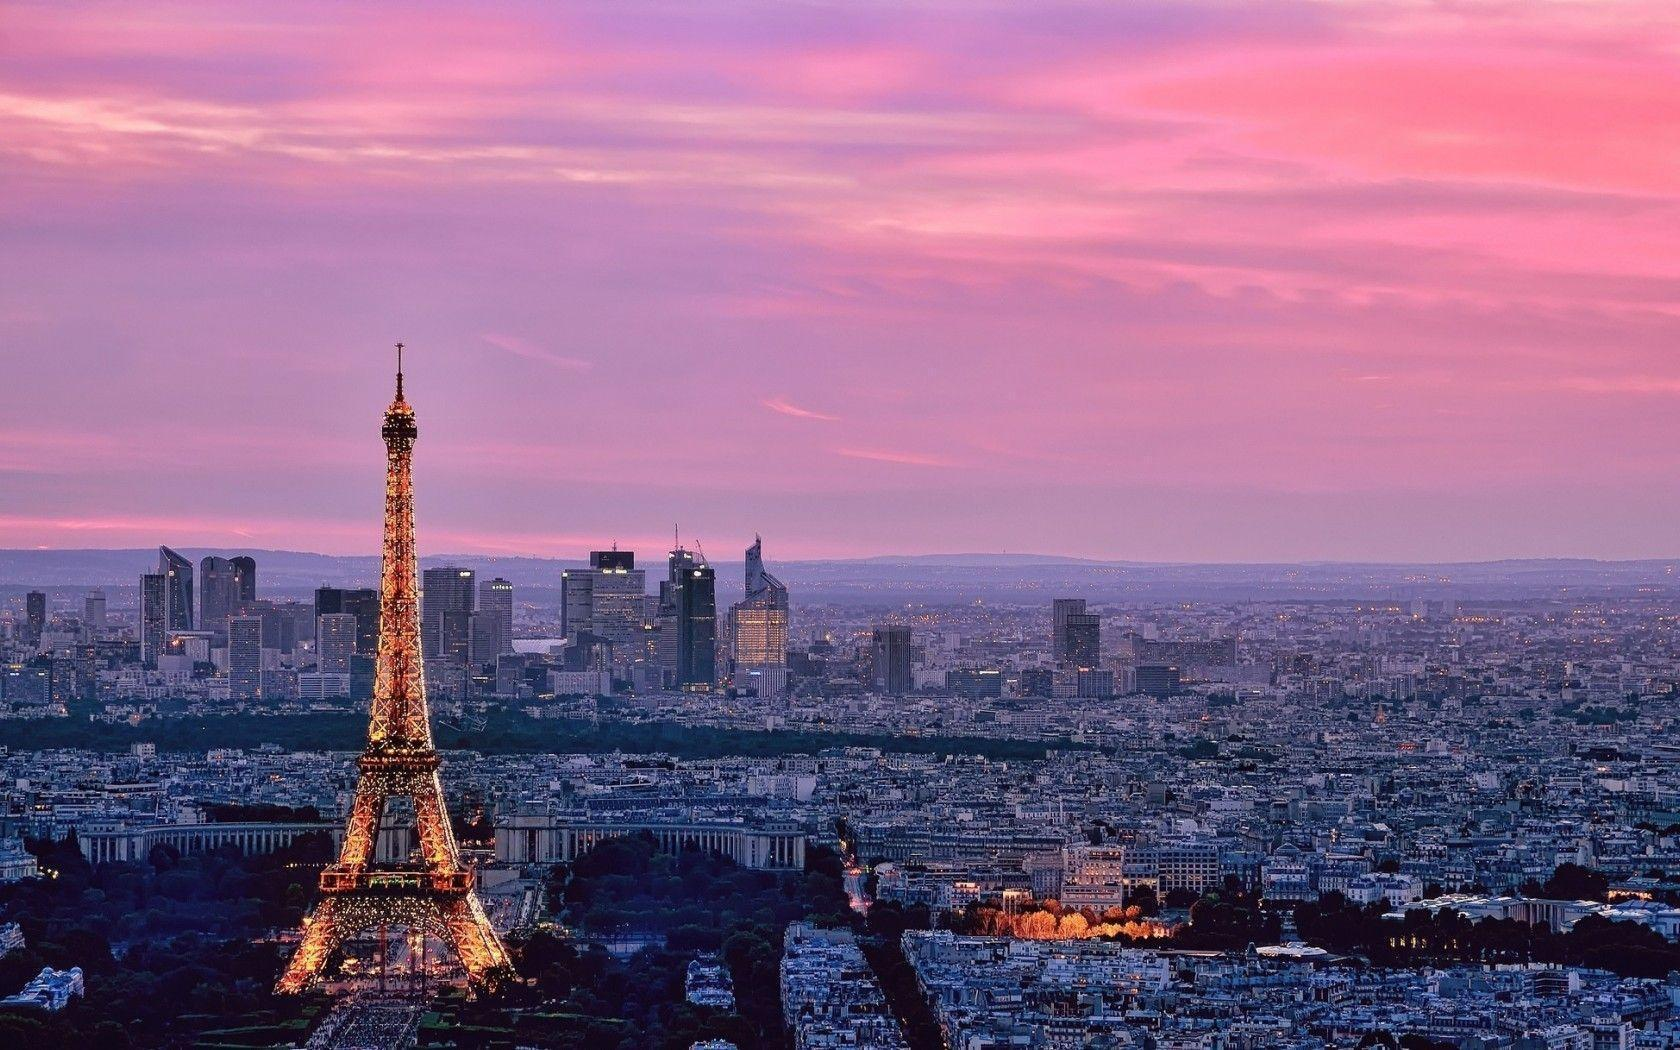 wallpapers of paris, wallpapers of paris france